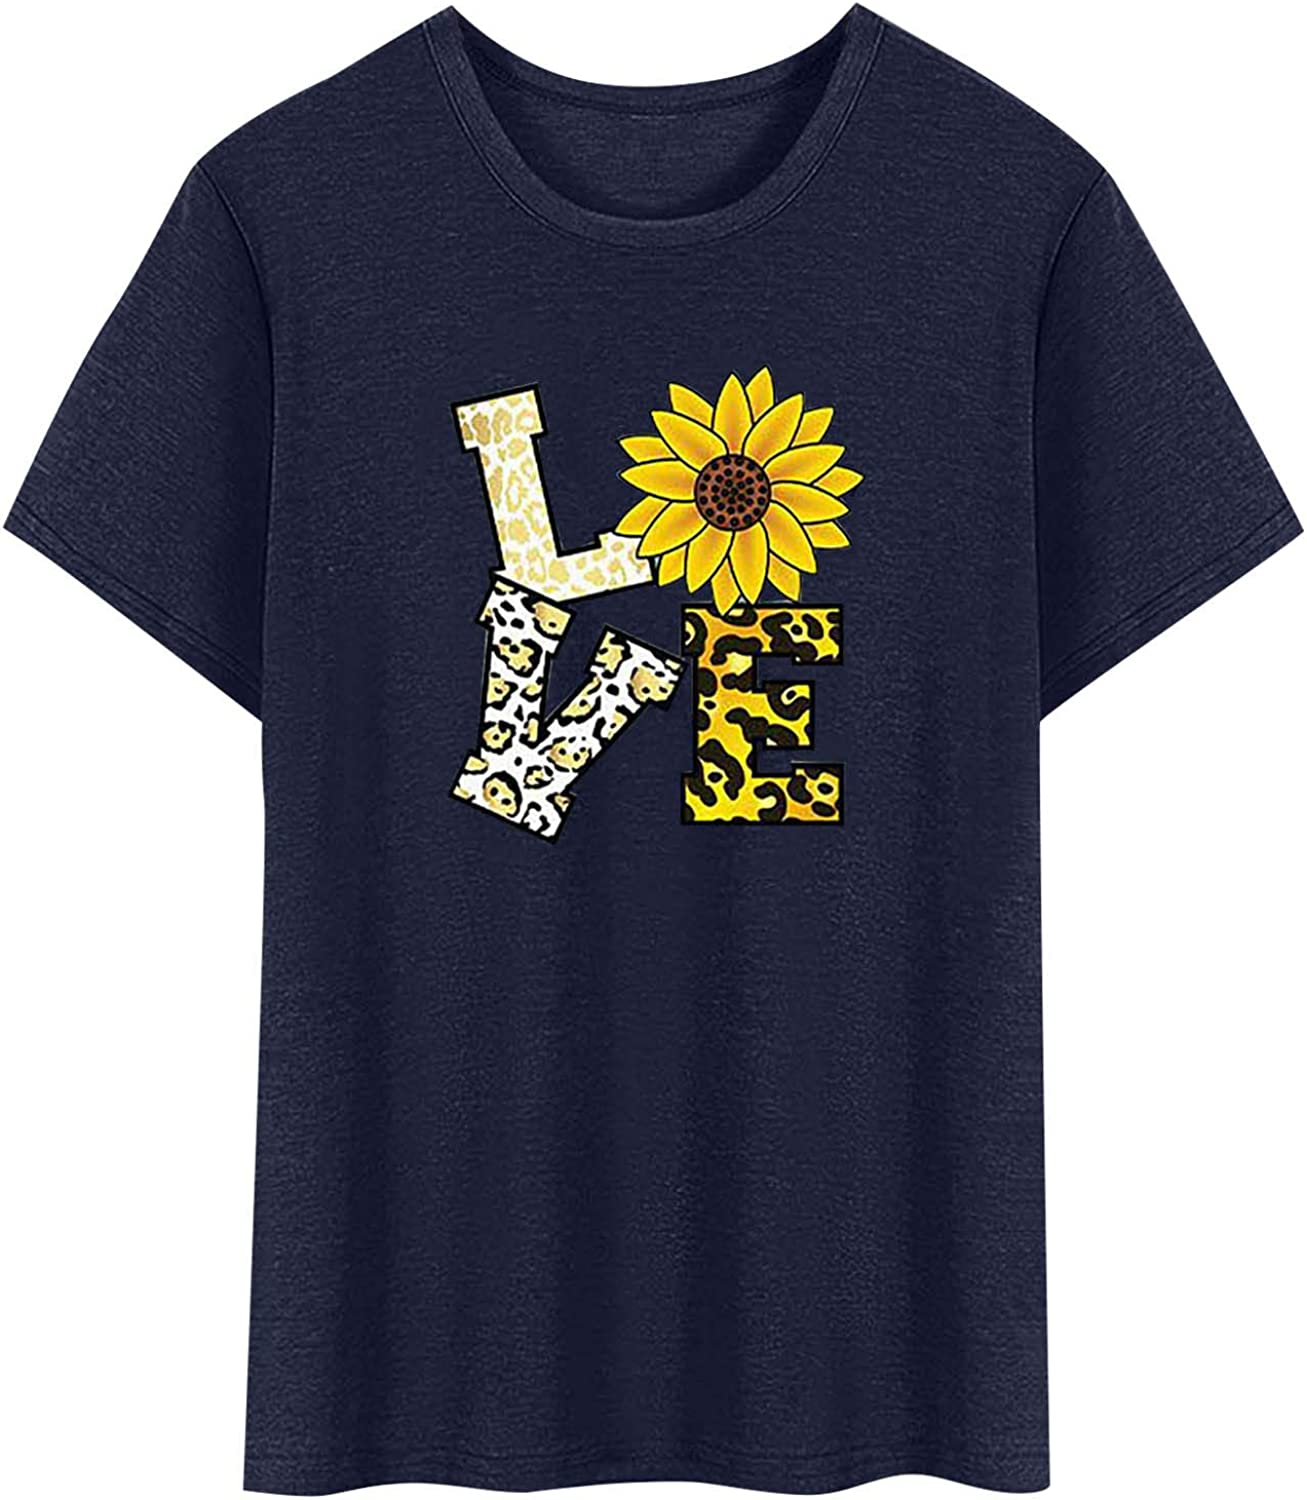 FUNEY Spring new work one after another Womens T Shirts Valentine's Day Graphic F Discount mail order Summer Cute Tees